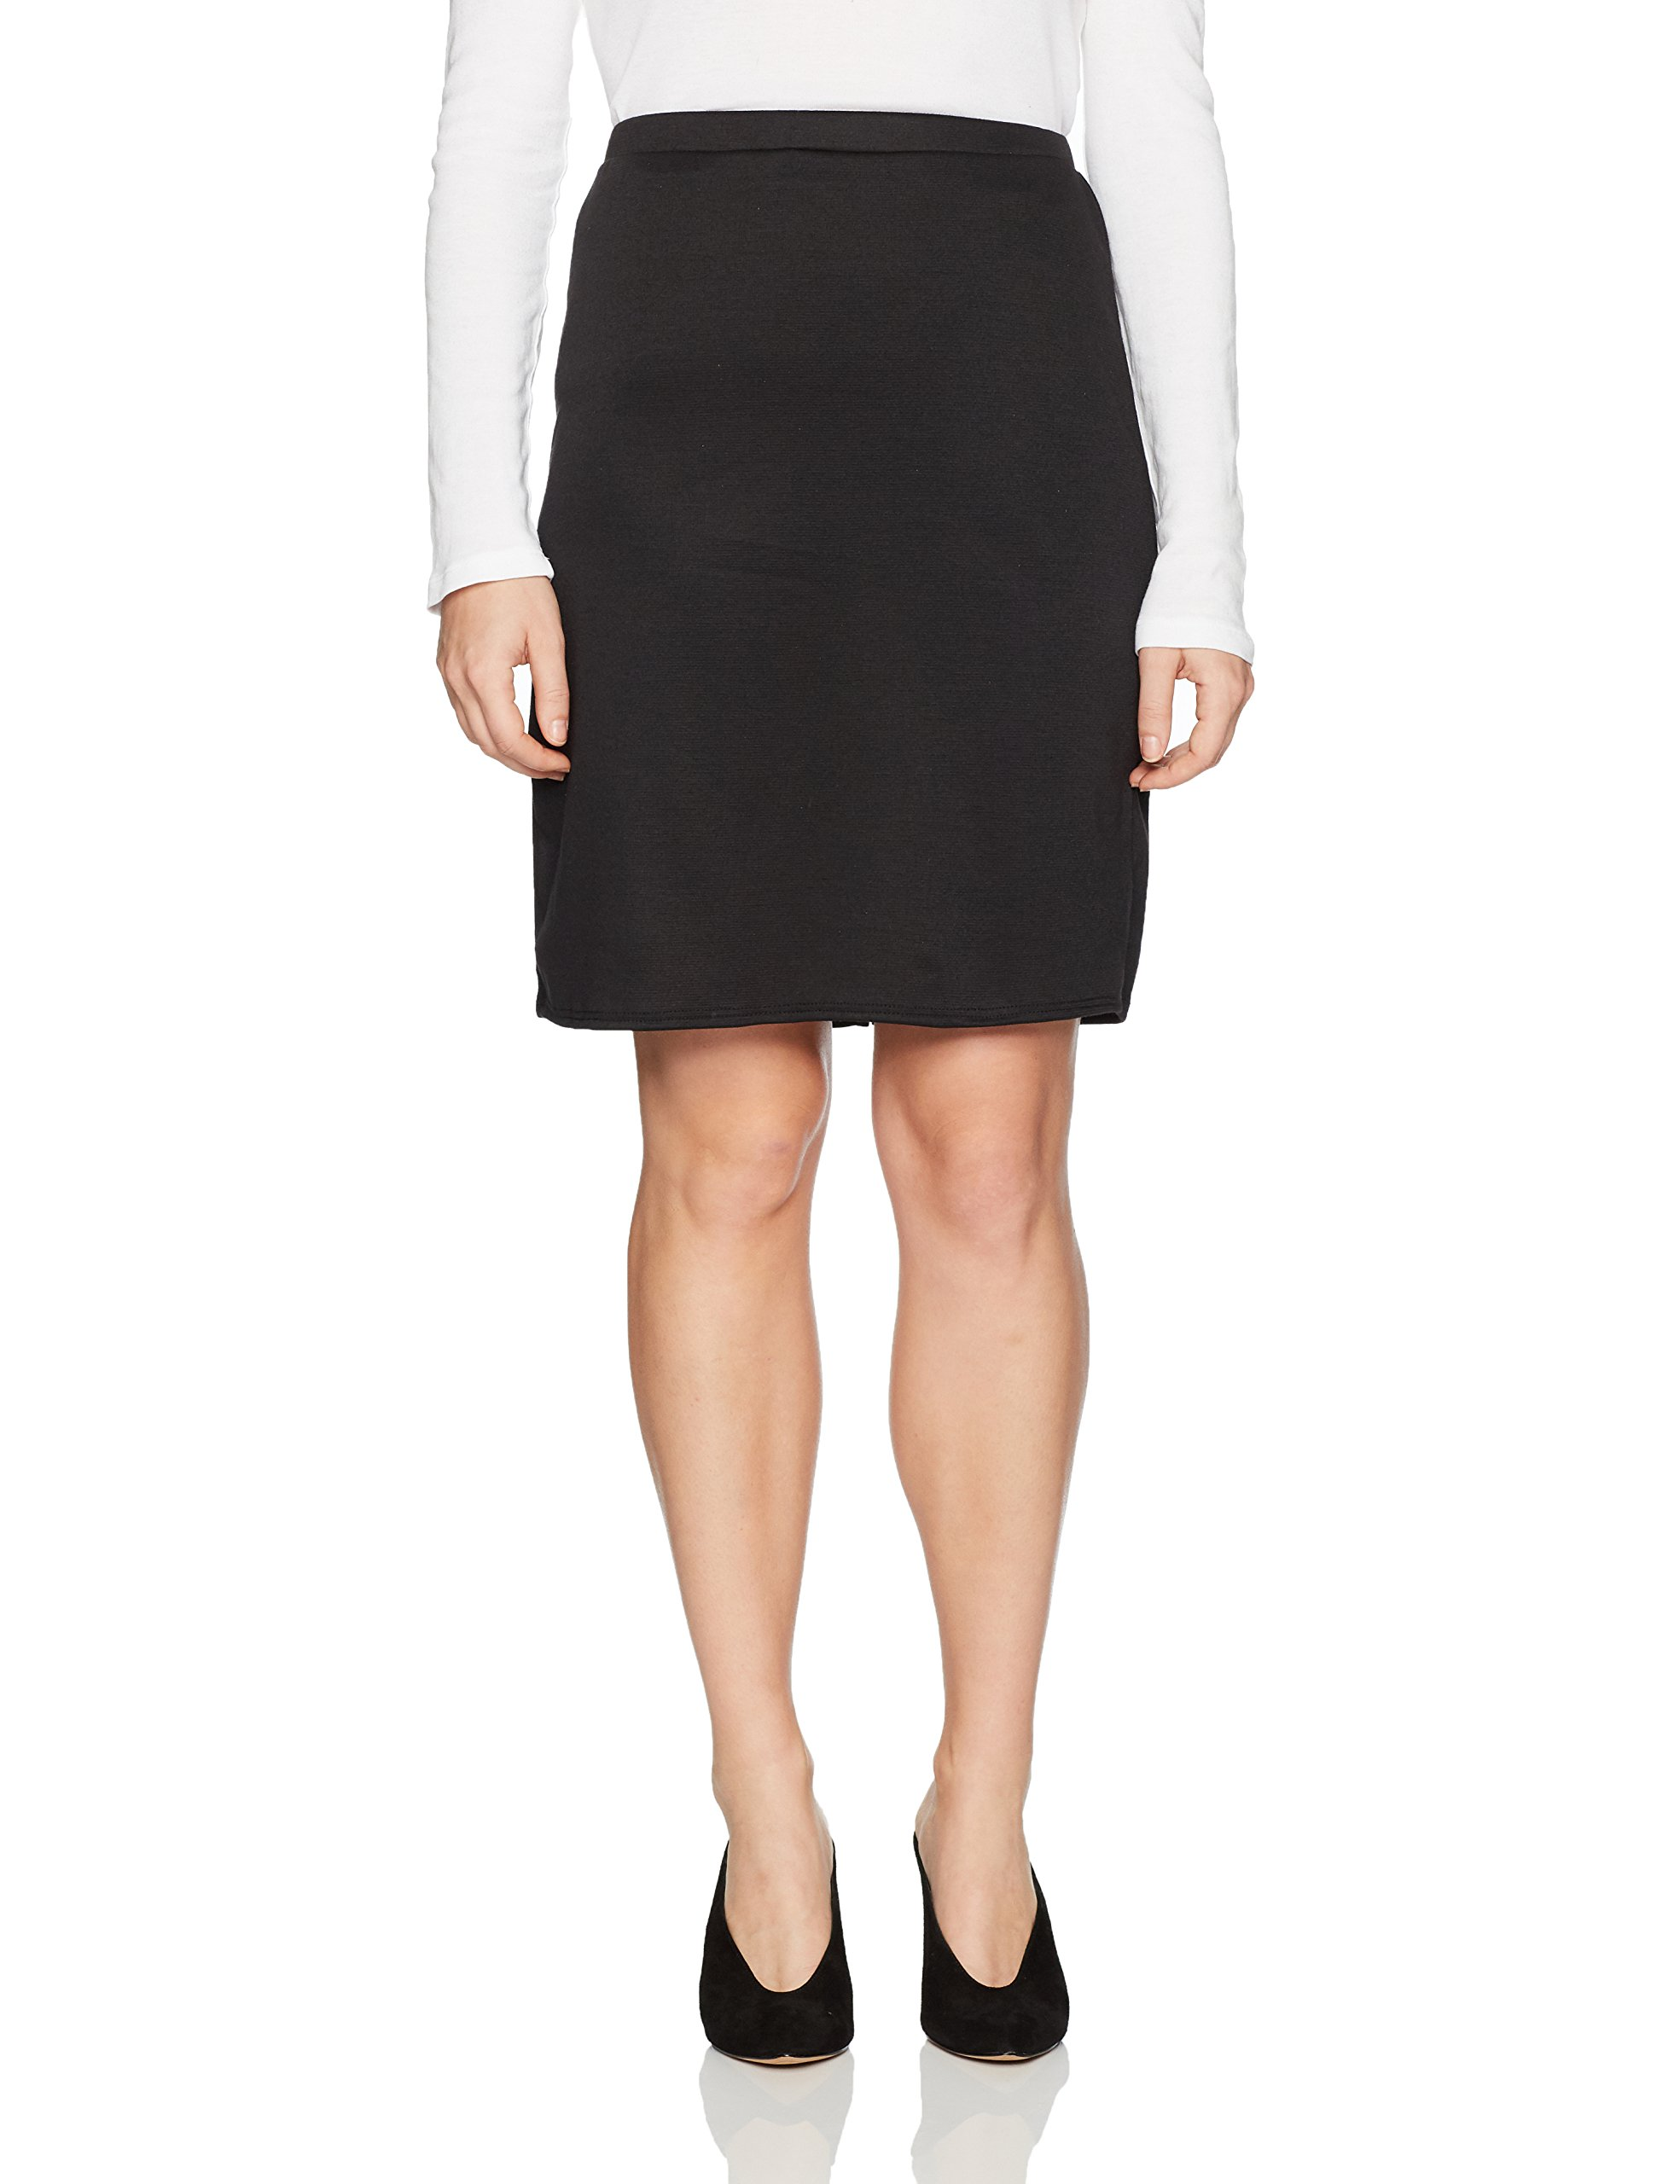 Star Vixen Women's Petite Knee Length Classic Stretch Pencil Skirt, Black, PXL by Star Vixen